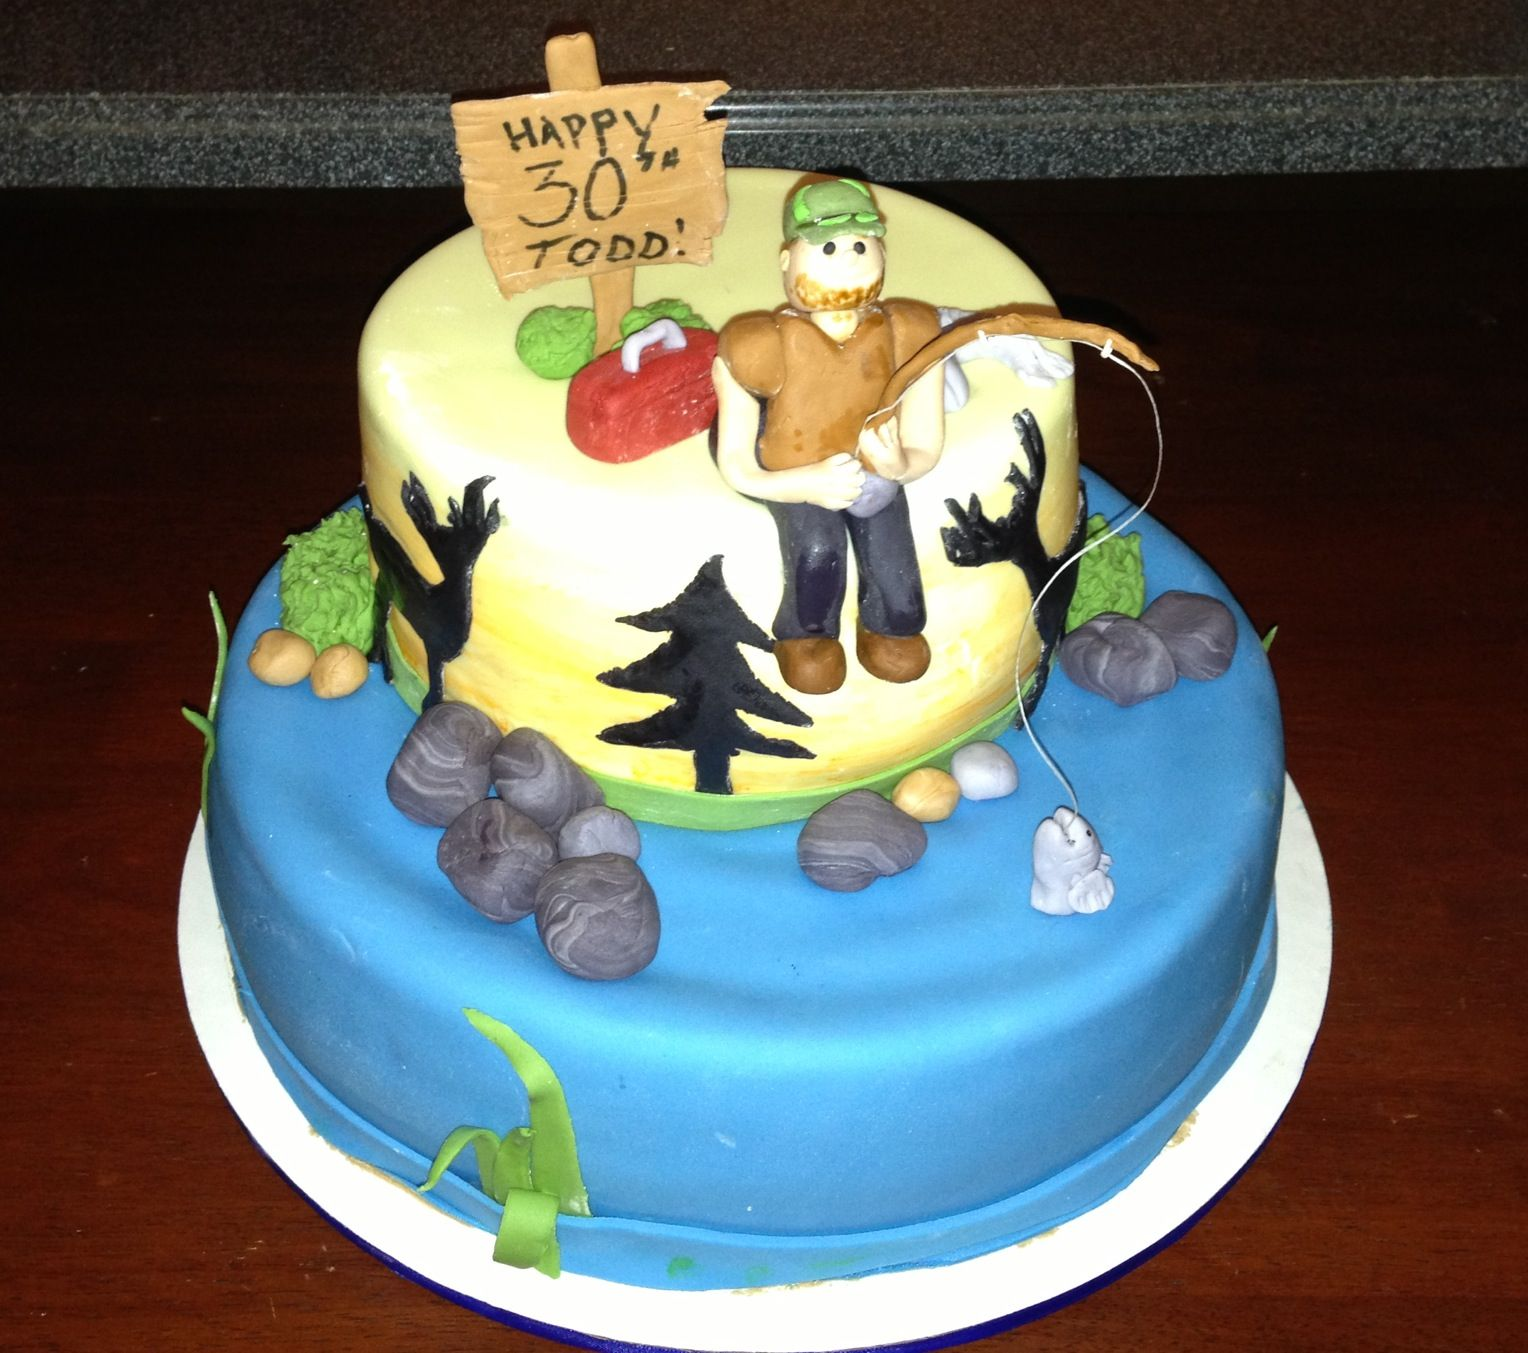 Best Birthday Cake Designs For Husband : My husband s 30th Birthday cake!! Food Pinterest ...